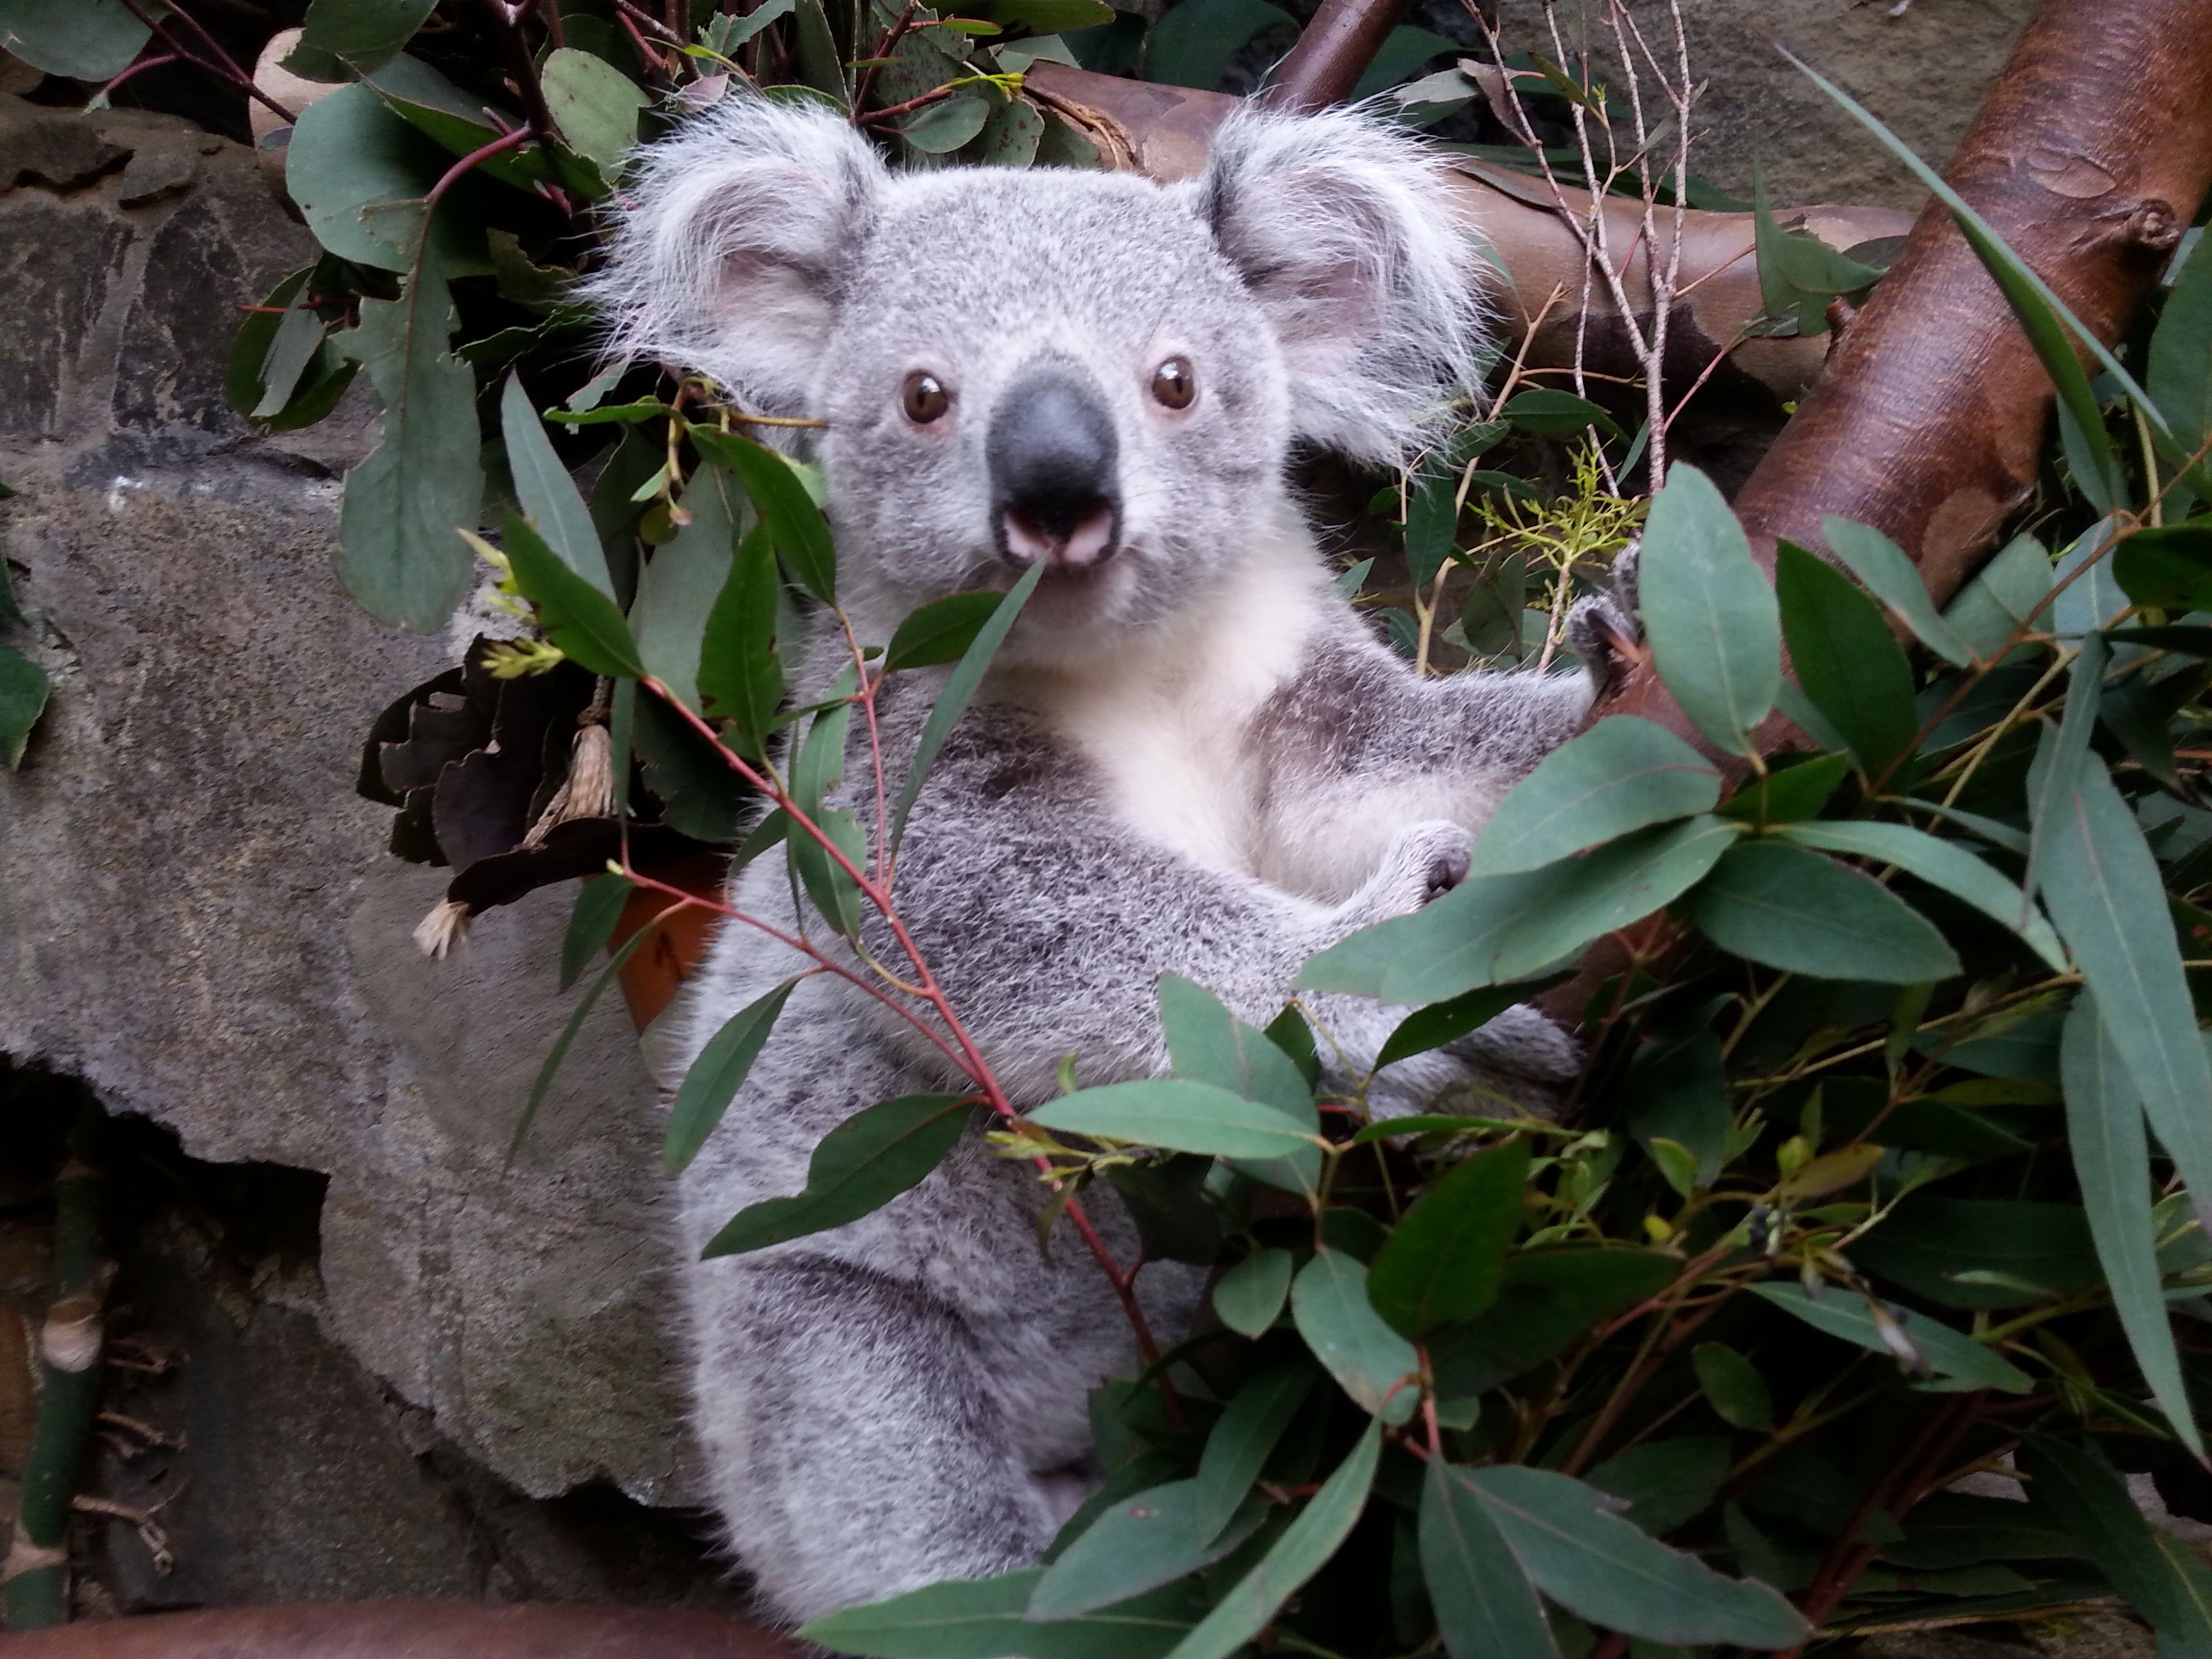 Read about this Koala joey's big adventure at the Edinburgh Zoo on ZooBorns.com and at http://www.zooborns.com/zooborns/2014/06/koalas-big-adventure-at-edinburgh-zoo.html